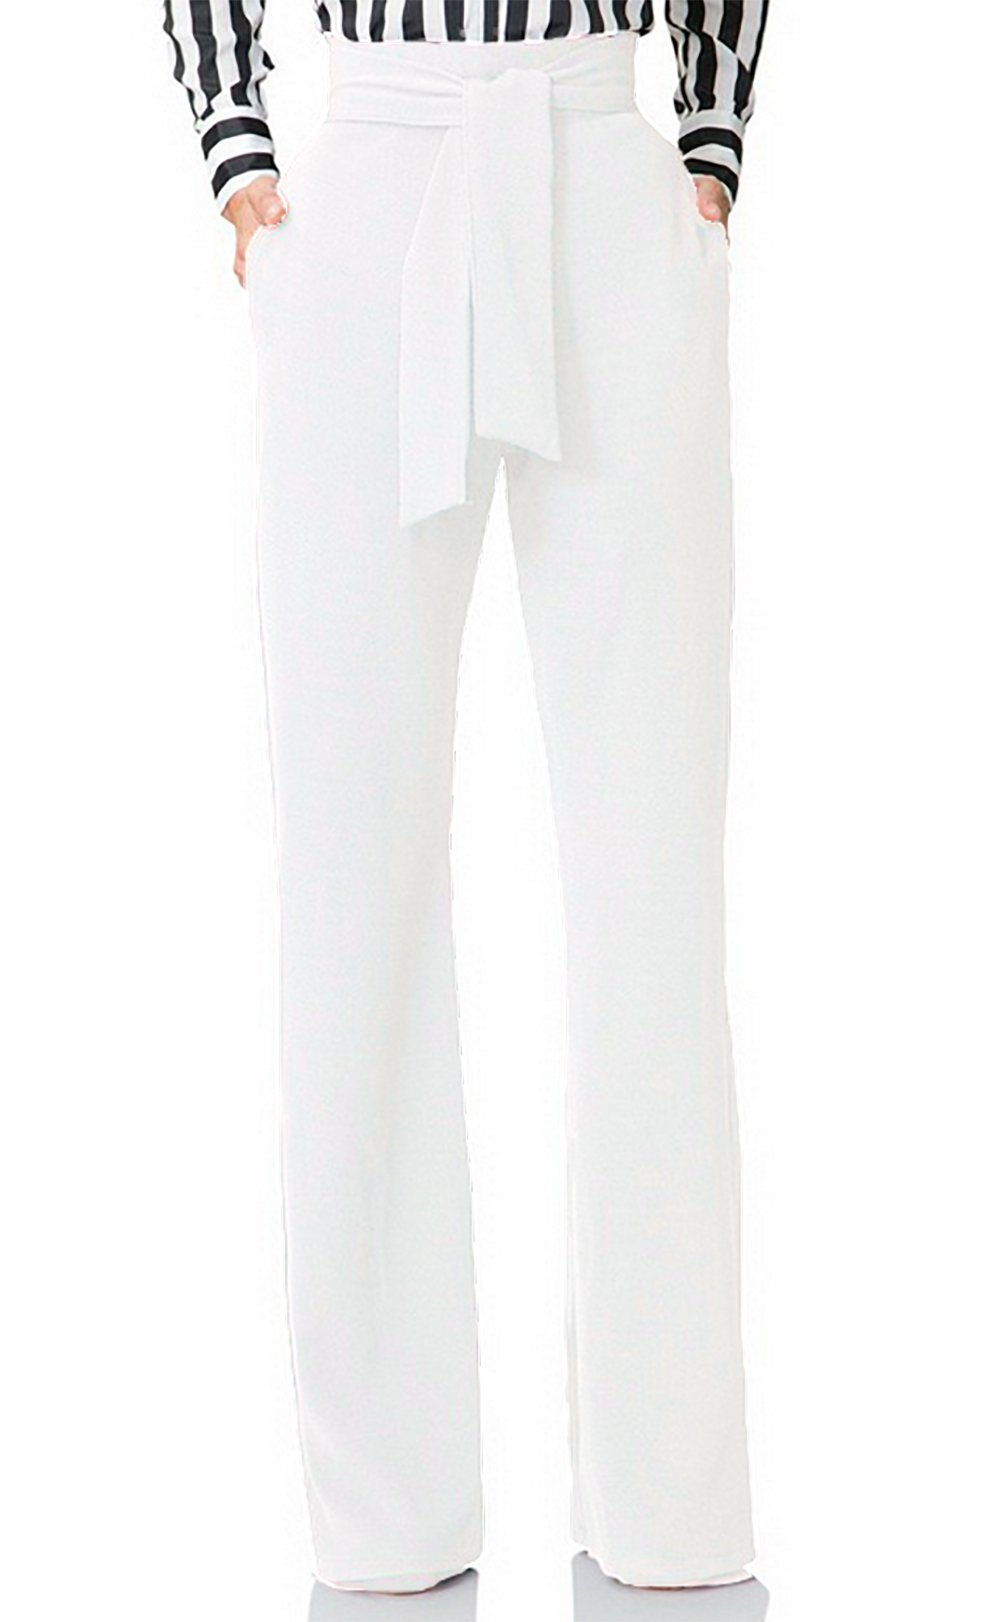 Women's Stretch Straight Leg High Waisted Summer Casual Long Pants with Belt